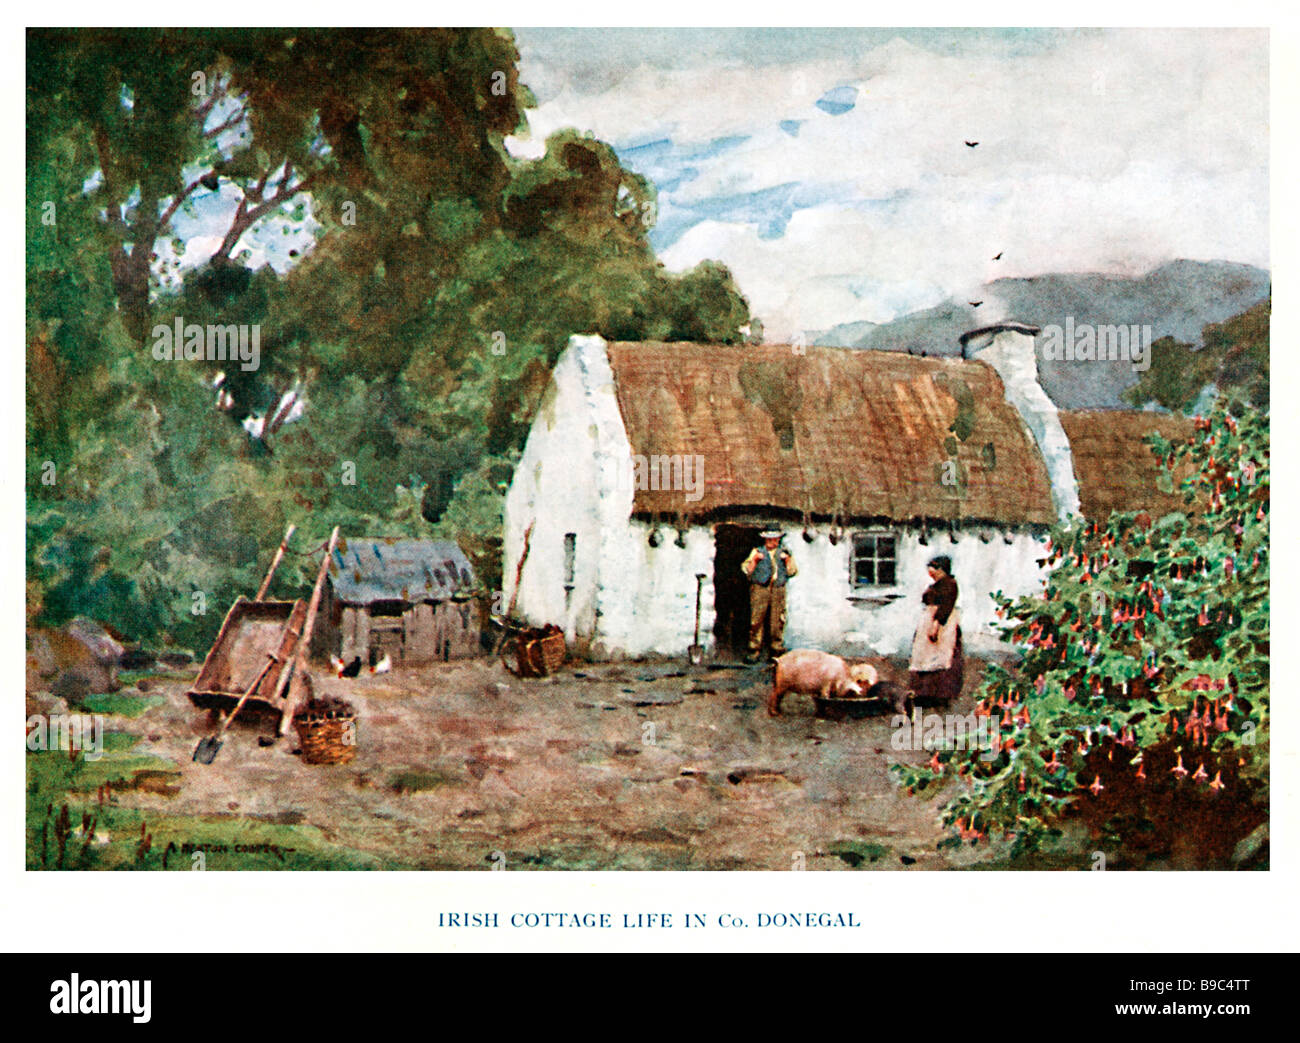 Cottage Donegal 1925 painting of rural life on a smallholding in North West Ireland pigs and chickens in the yard - Stock Image